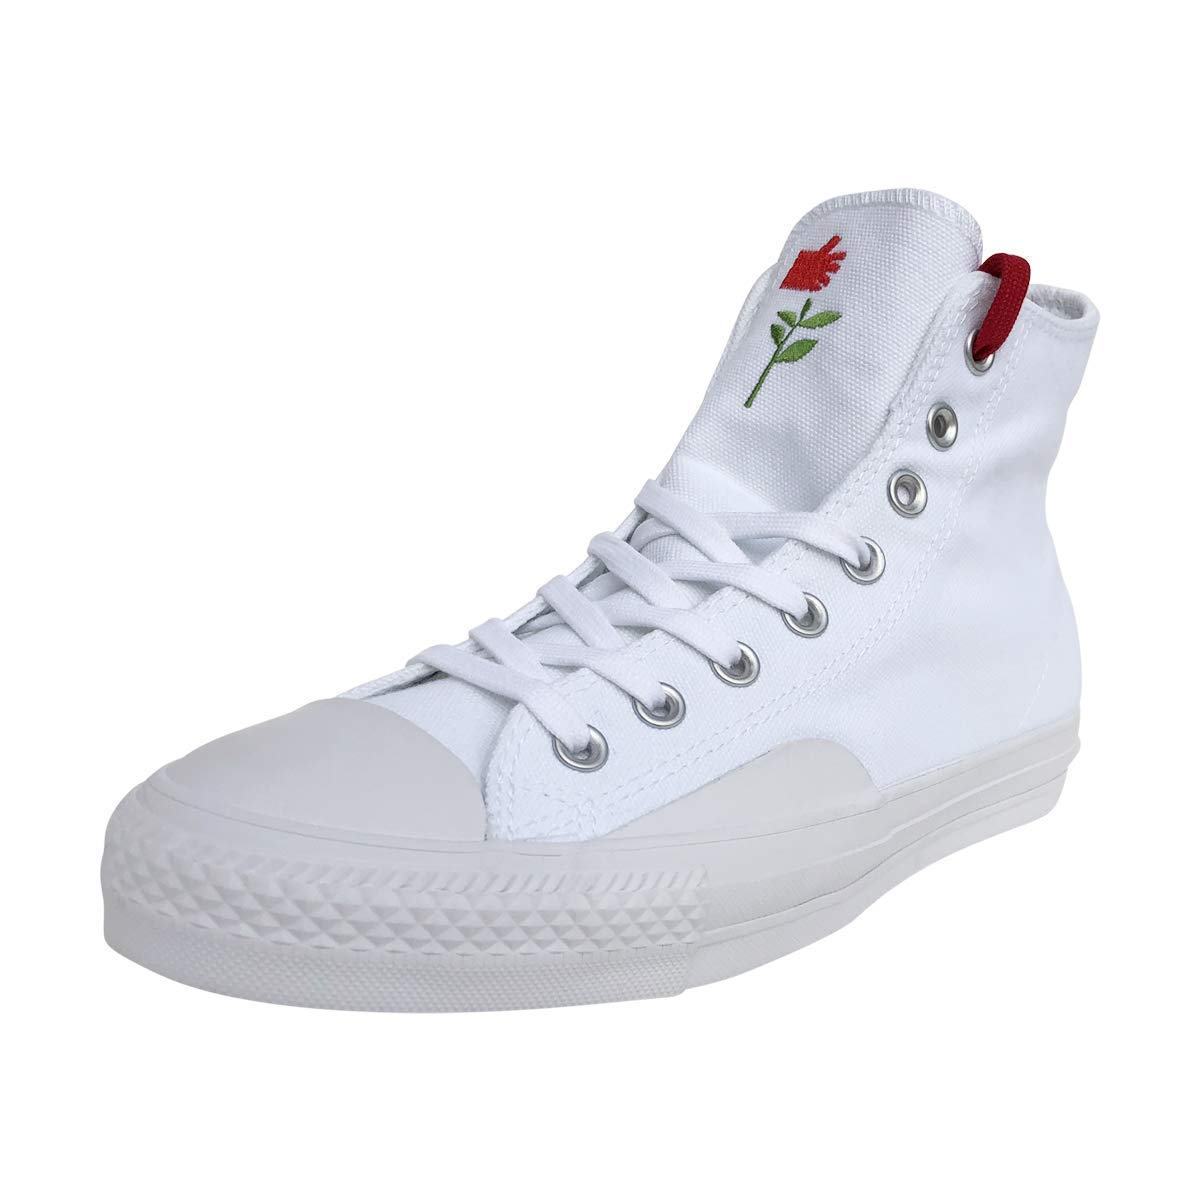 Converse Chuck Taylor All Star Core Hi product image